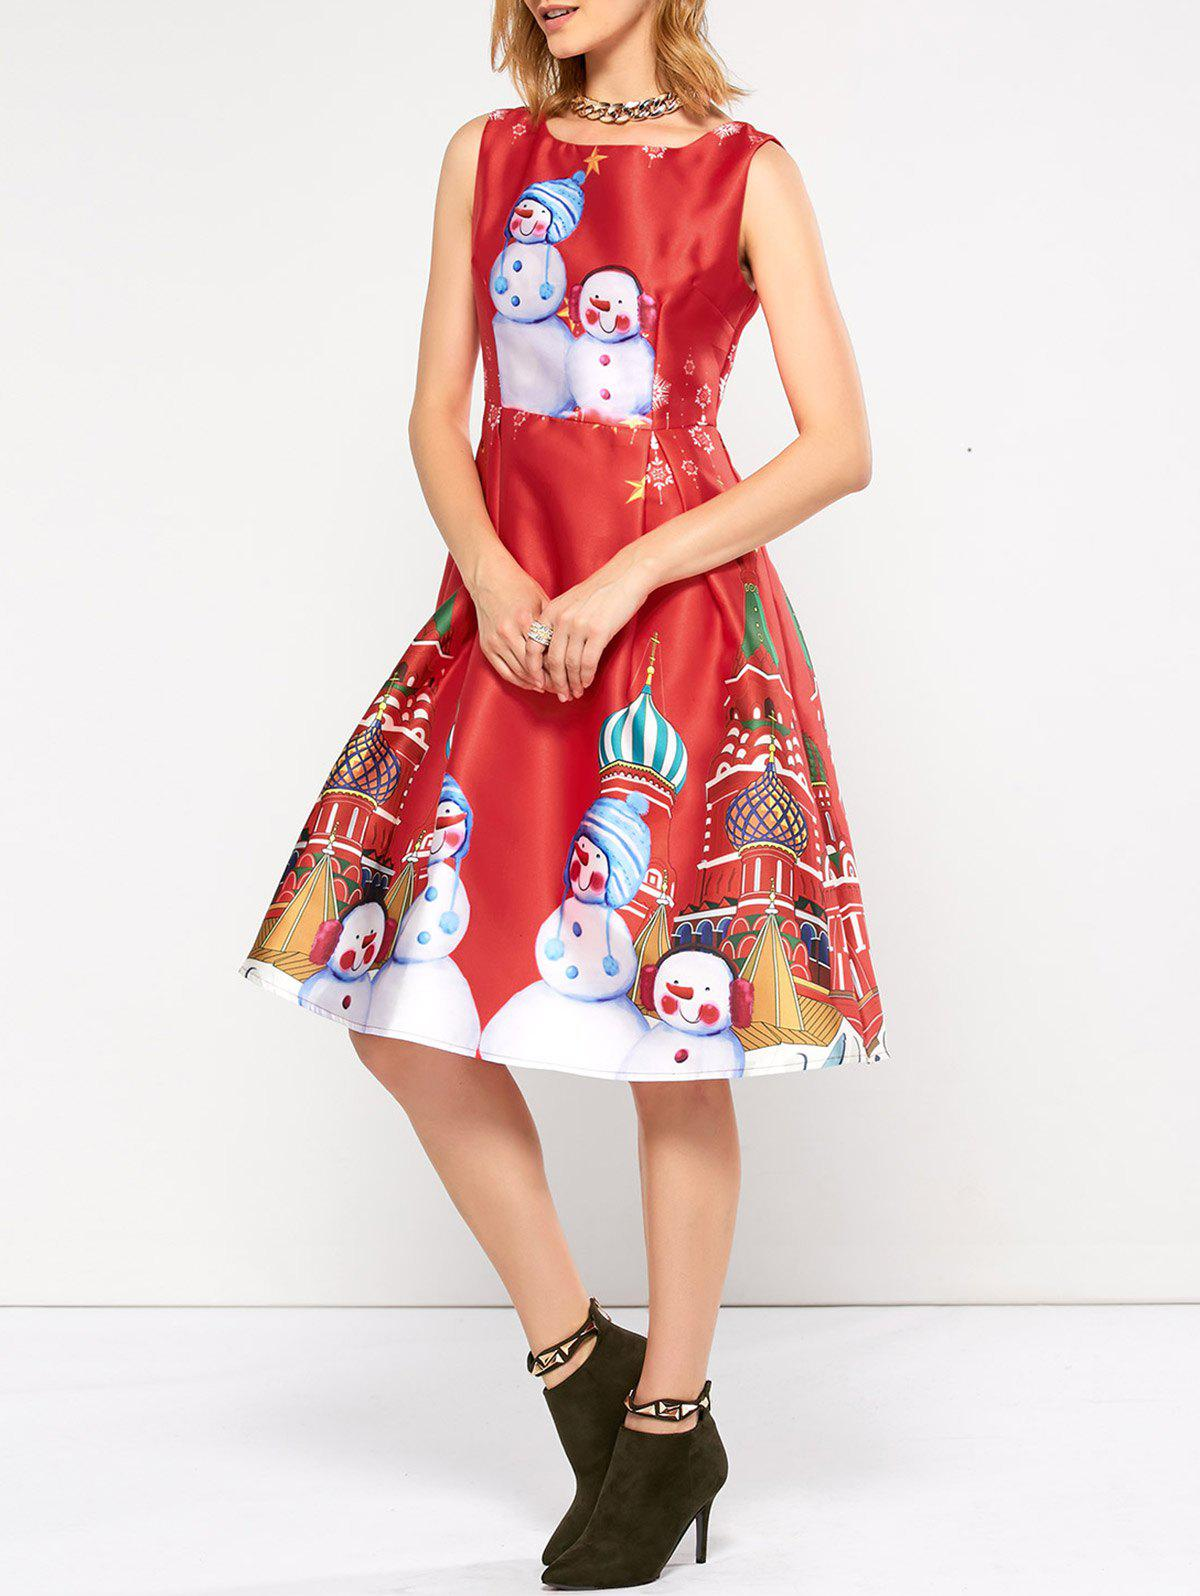 Sleeveless Snowman Christmas Skater Party DressWOMEN<br><br>Size: M; Color: RED; Style: Cute; Material: Polyester; Silhouette: A-Line; Dresses Length: Knee-Length; Neckline: Round Collar; Sleeve Length: Sleeveless; Pattern Type: Character; With Belt: No; Season: Fall,Spring,Summer; Weight: 0.350kg; Package Contents: 1 x Dress;